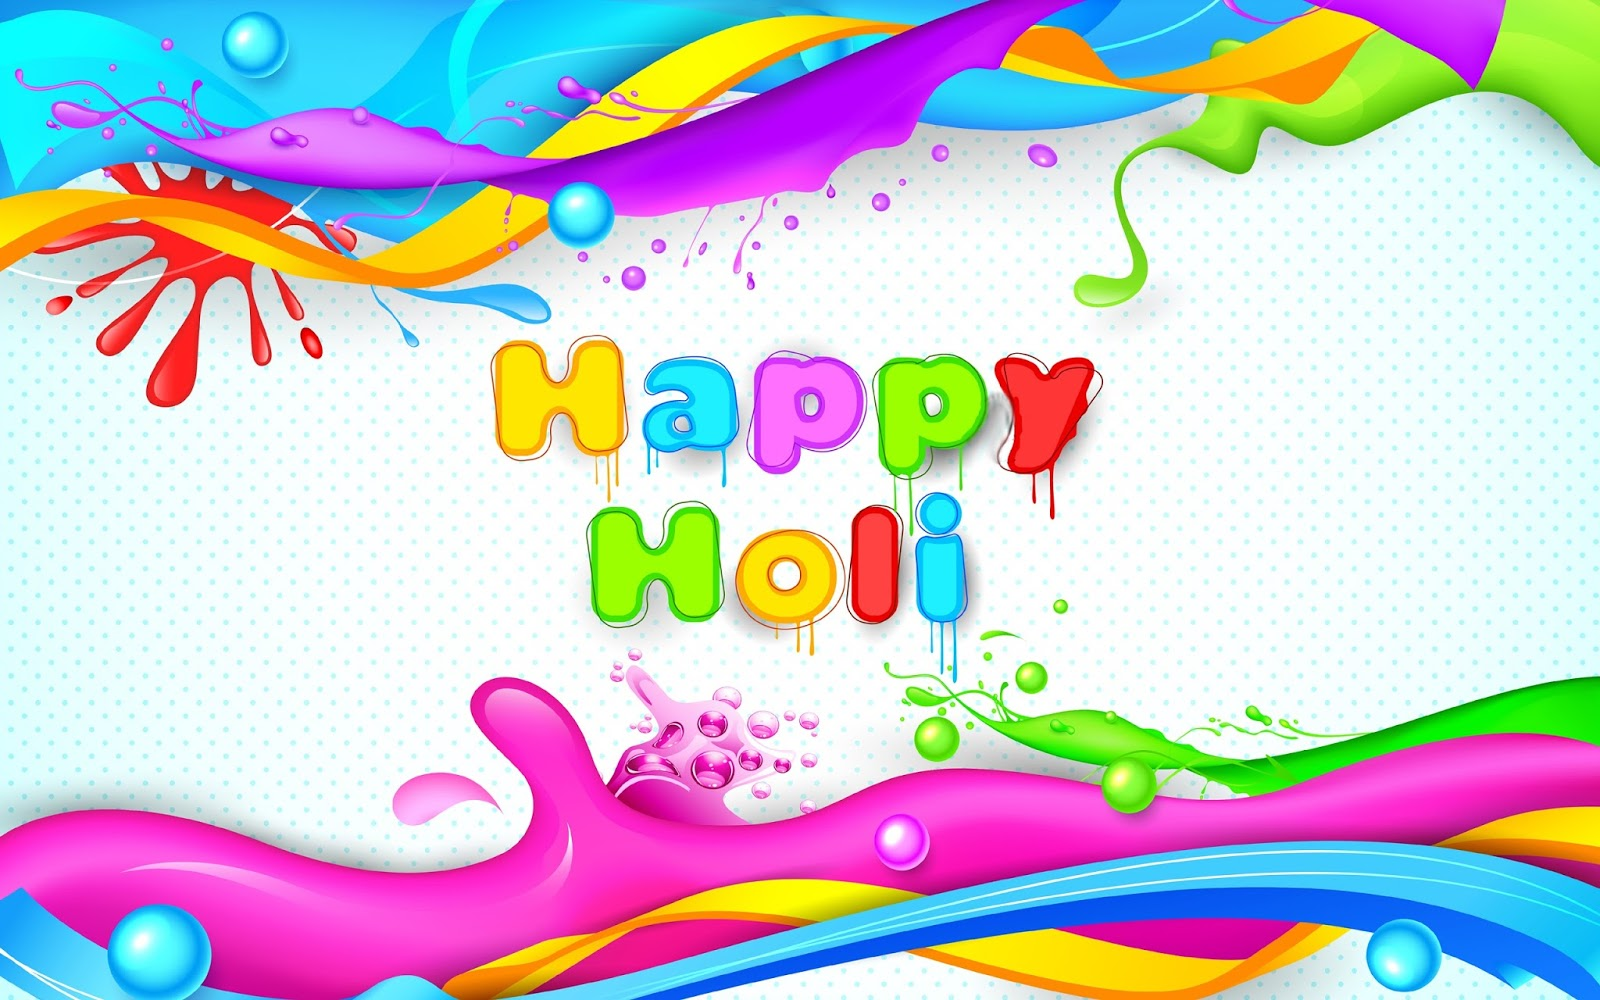 Happy Holi Image and Holi Wallpaper